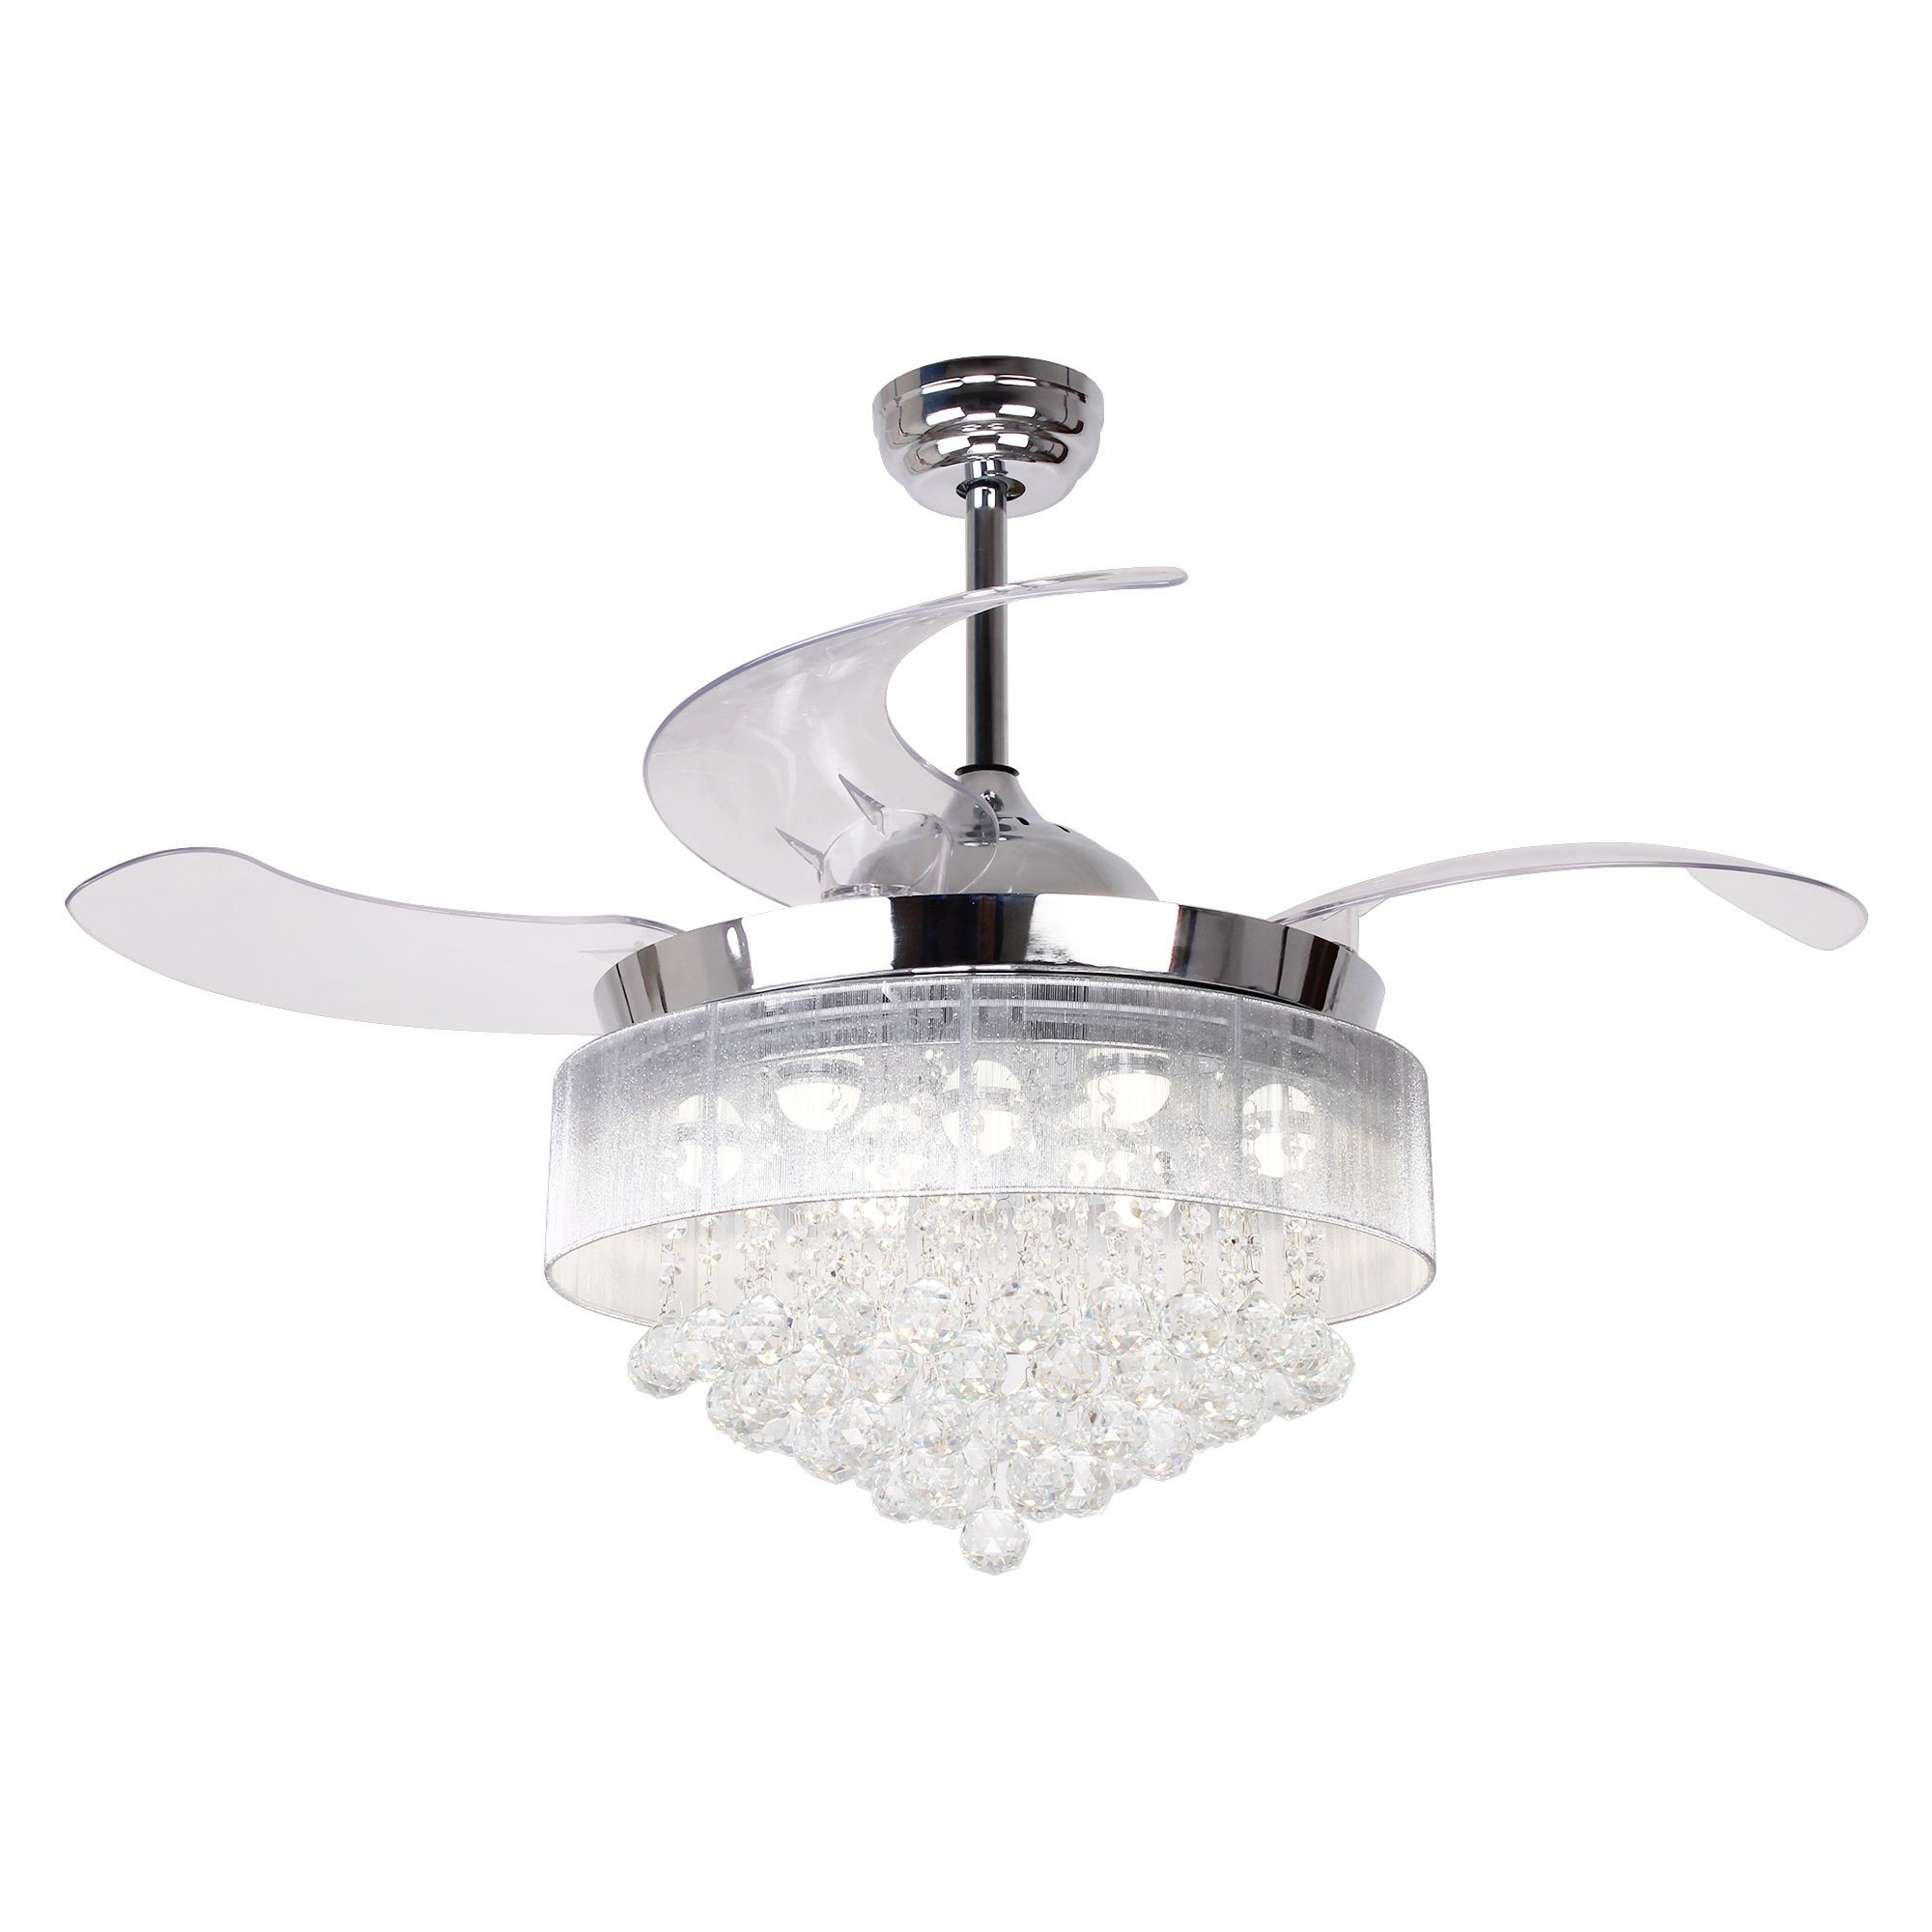 """Broxburne 4 Blade Led Ceiling Fans With Remote Pertaining To Most Current 46"""" Broxburne Cool Light 4 Blade Led Ceiling Fan With Remote, Chrome (View 7 of 20)"""